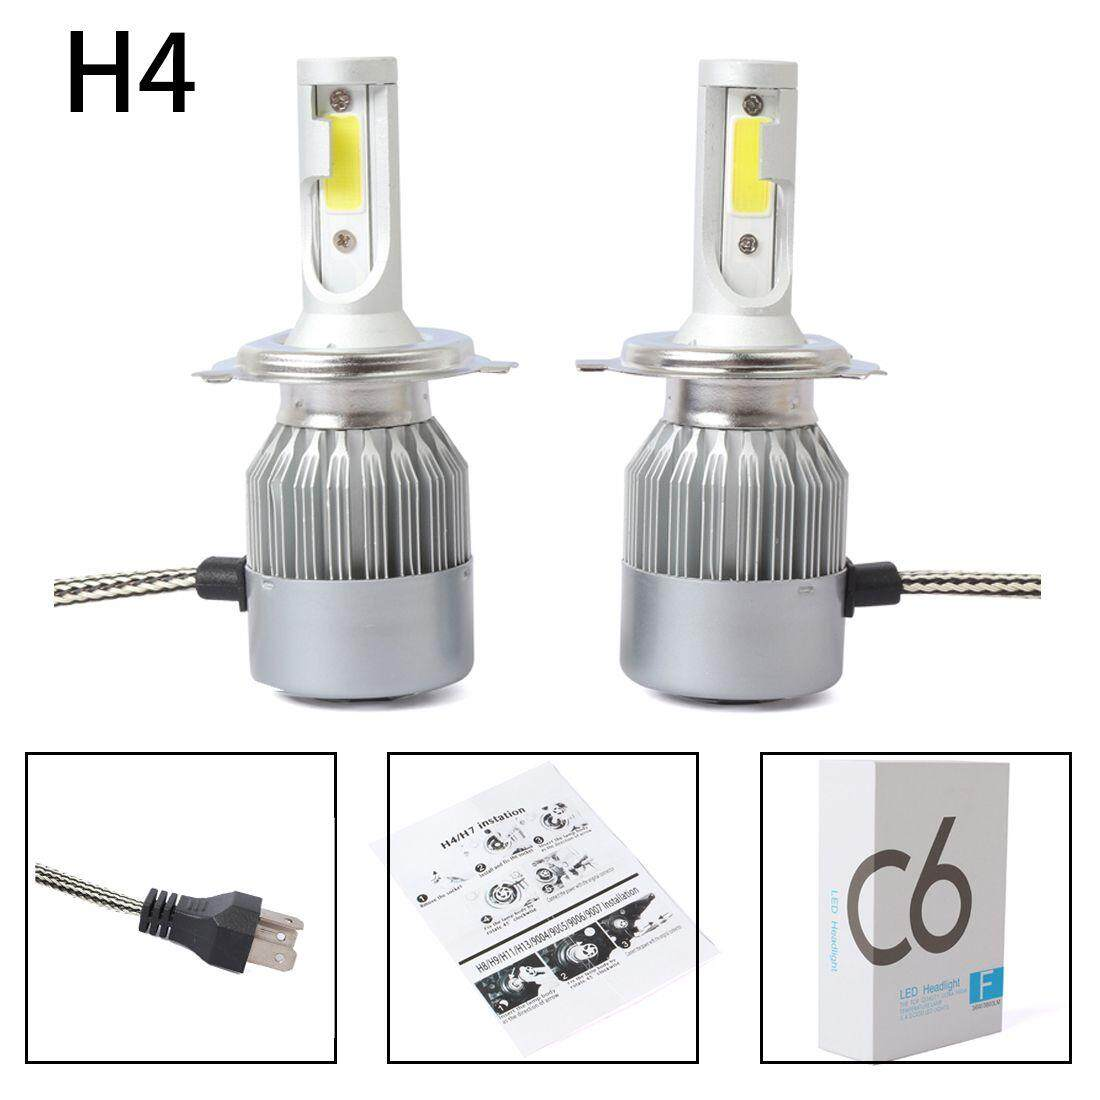 Motorcycle Head Lights For Sale Light Assemblies Online 9003 H4 Headlight Wiring Diagram New 2pcs C6 Led Car Kit Cob 36w 7600lm White Bulbs